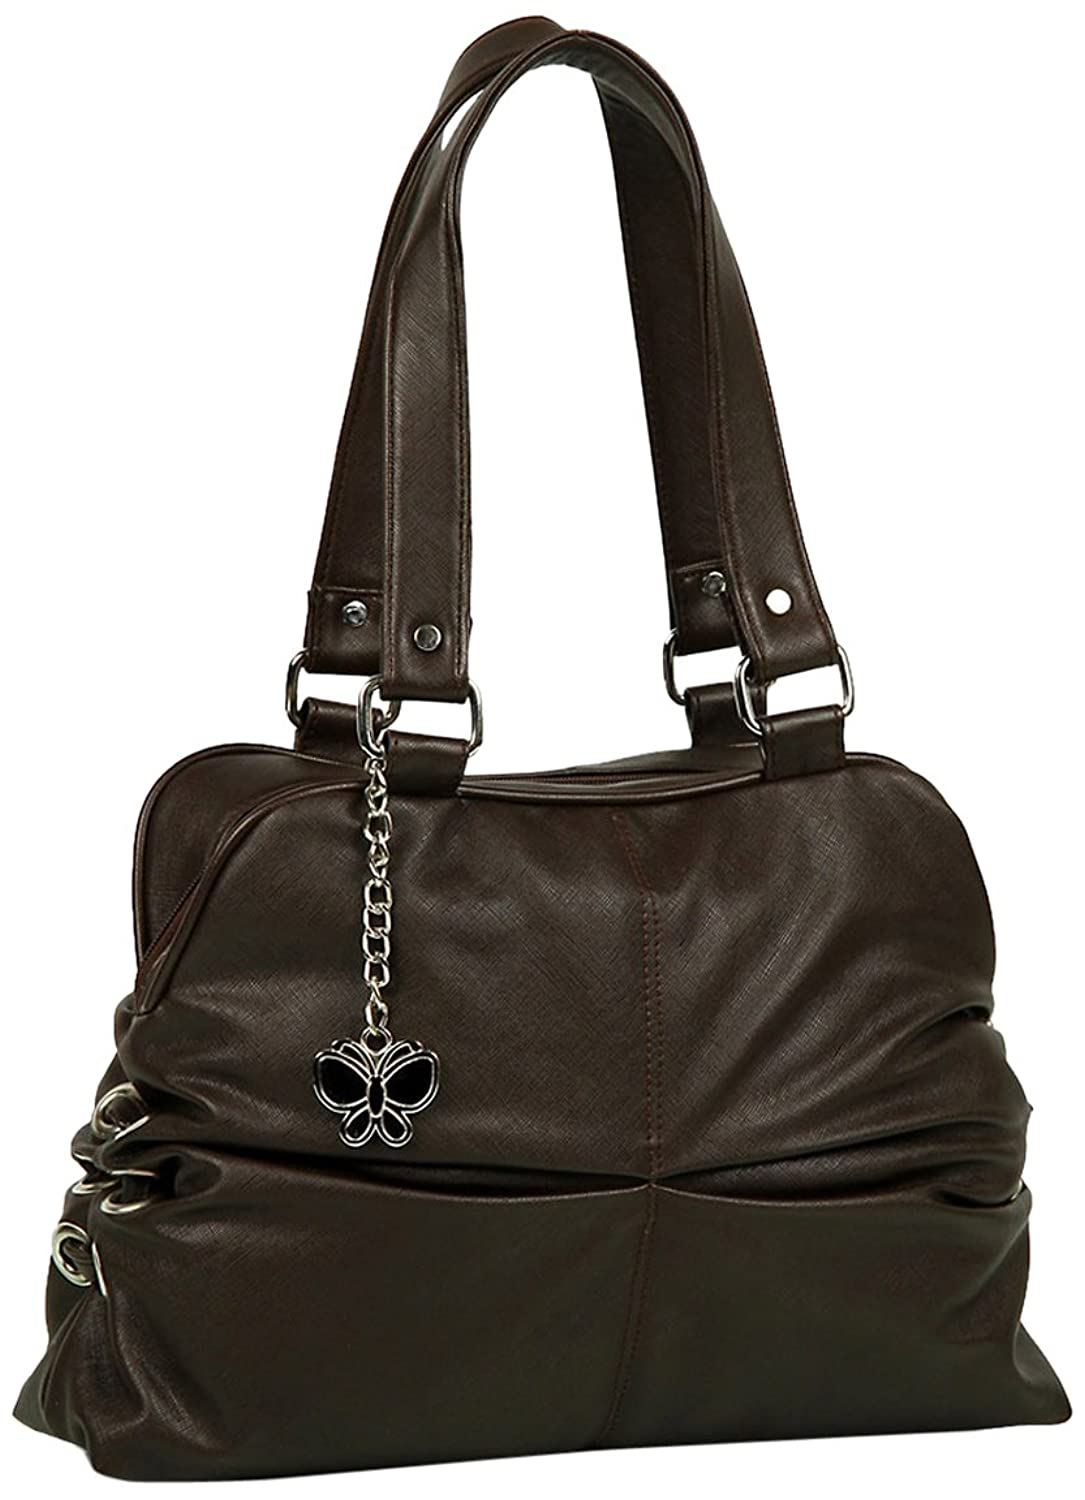 Get Butterflies Handbag Brown BNS 0178 For Rs 699 Only At Amazon